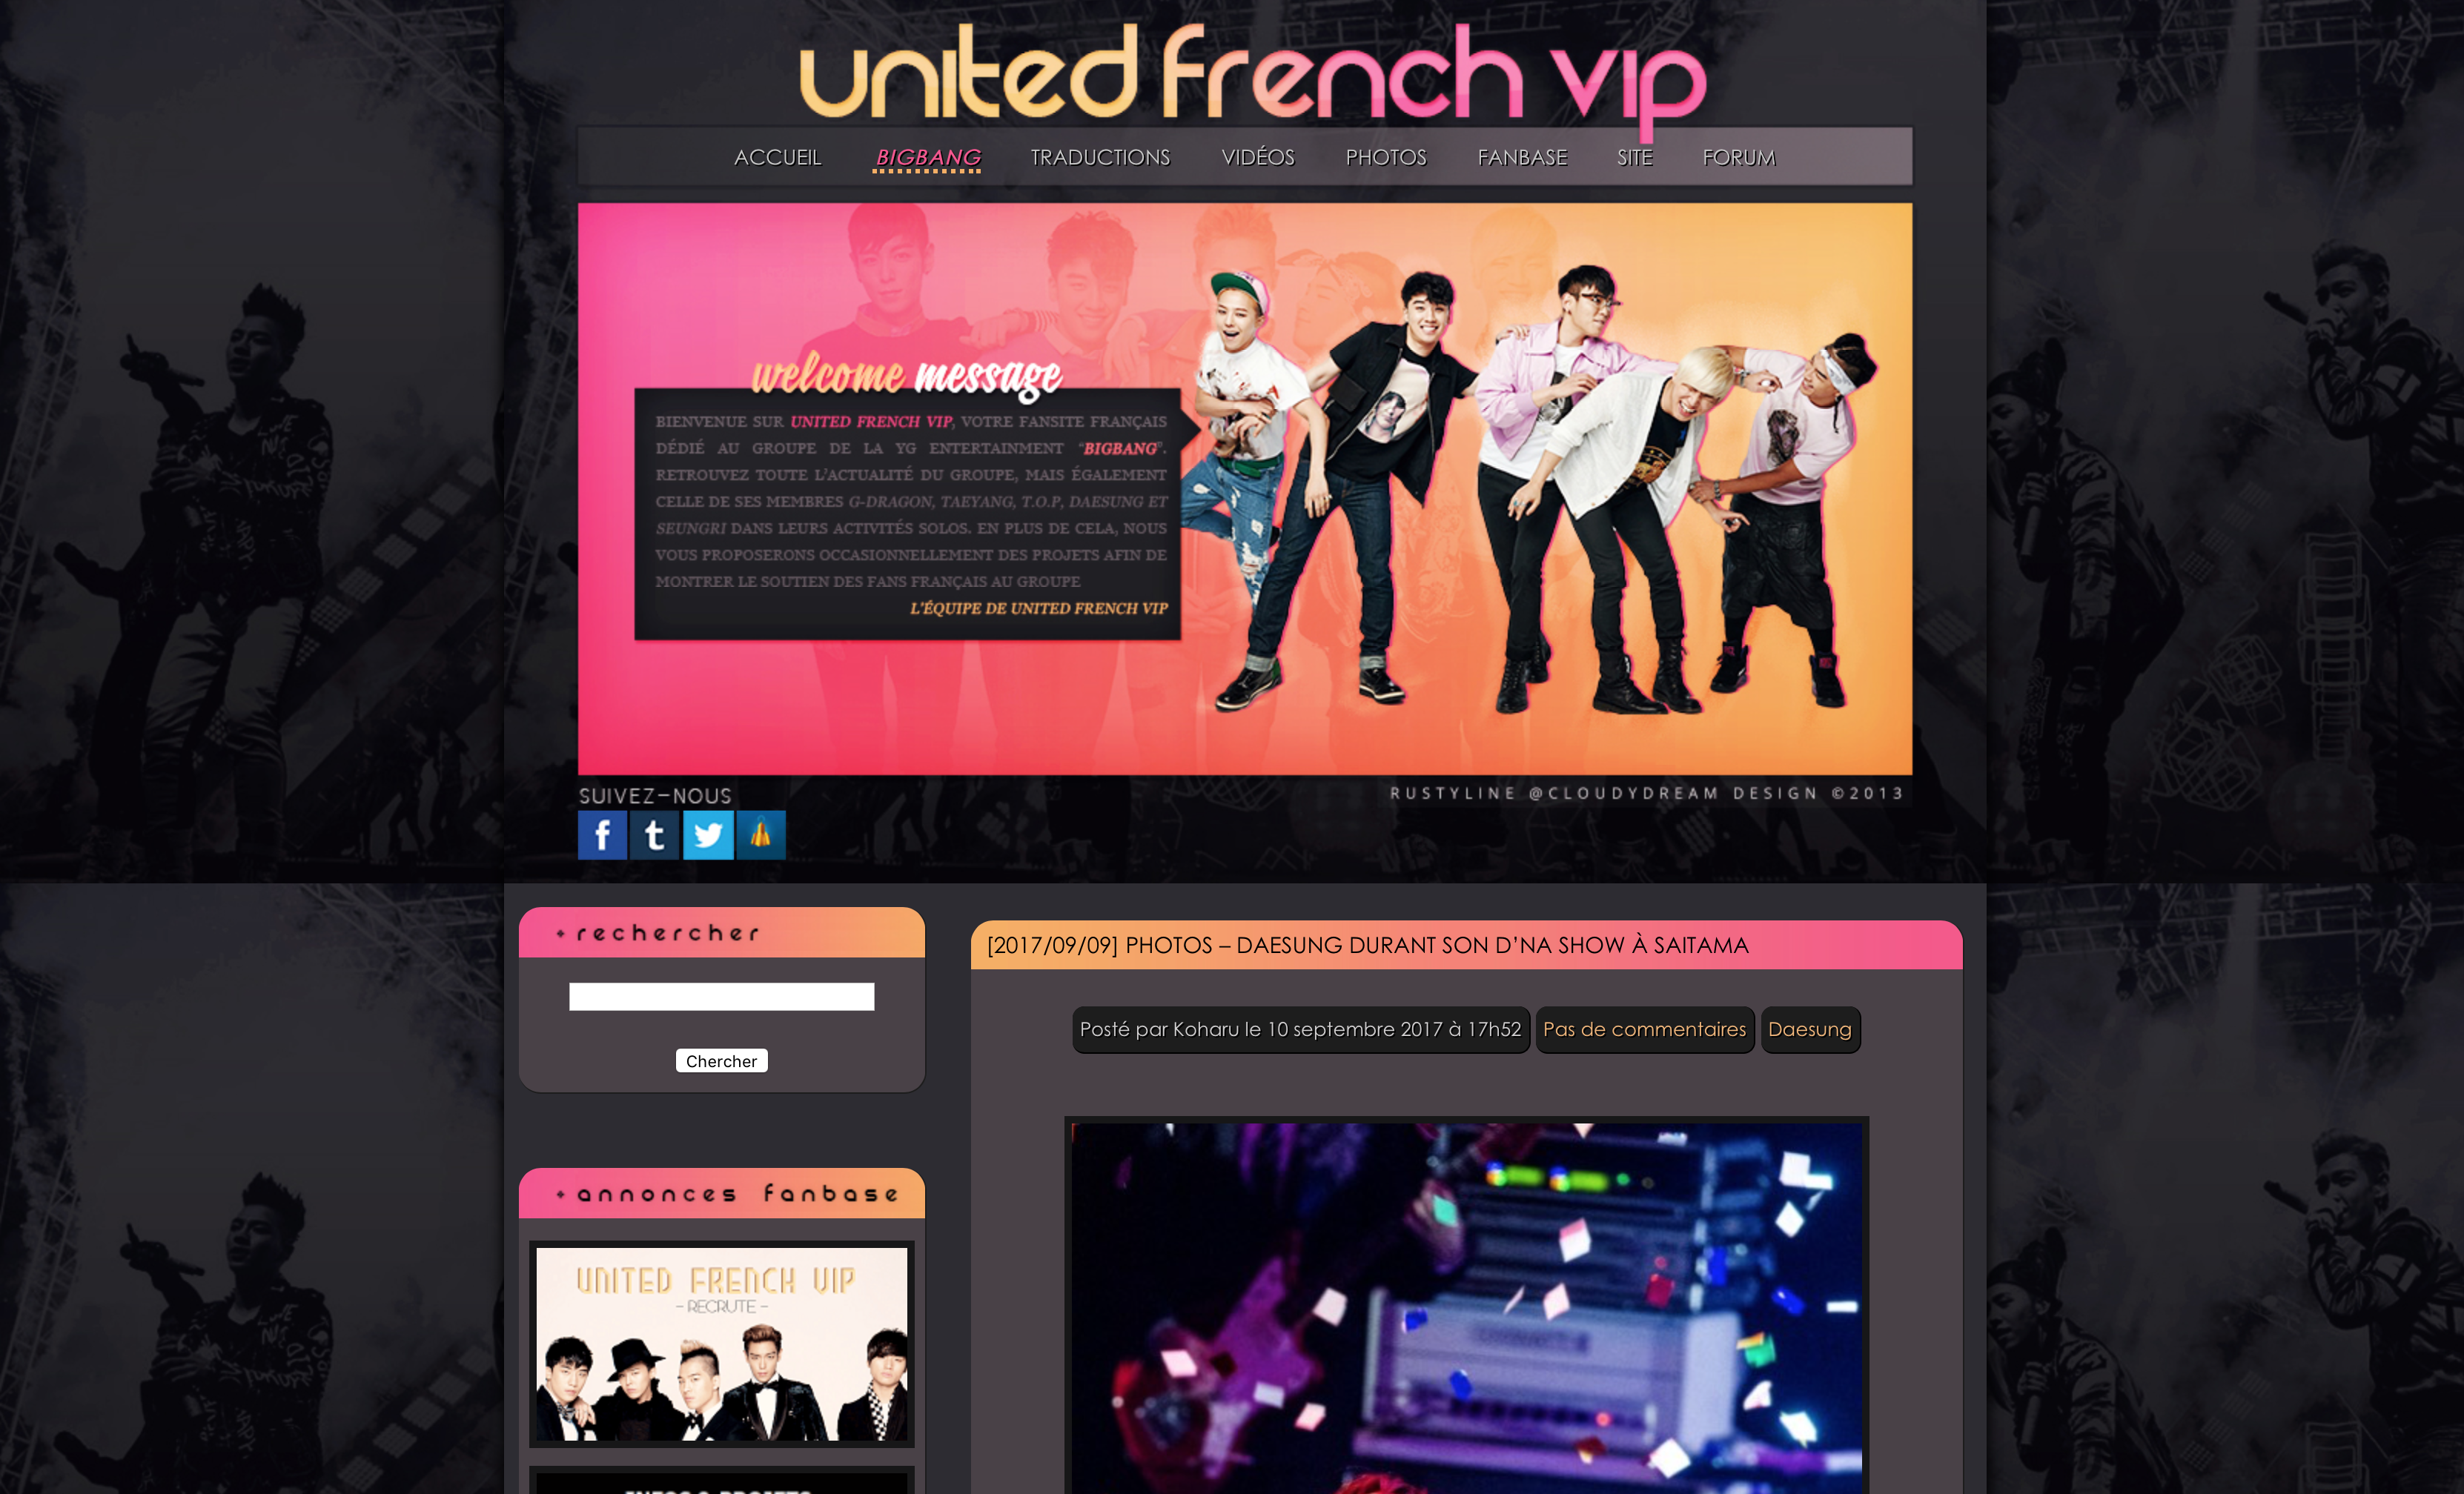 United French VIP